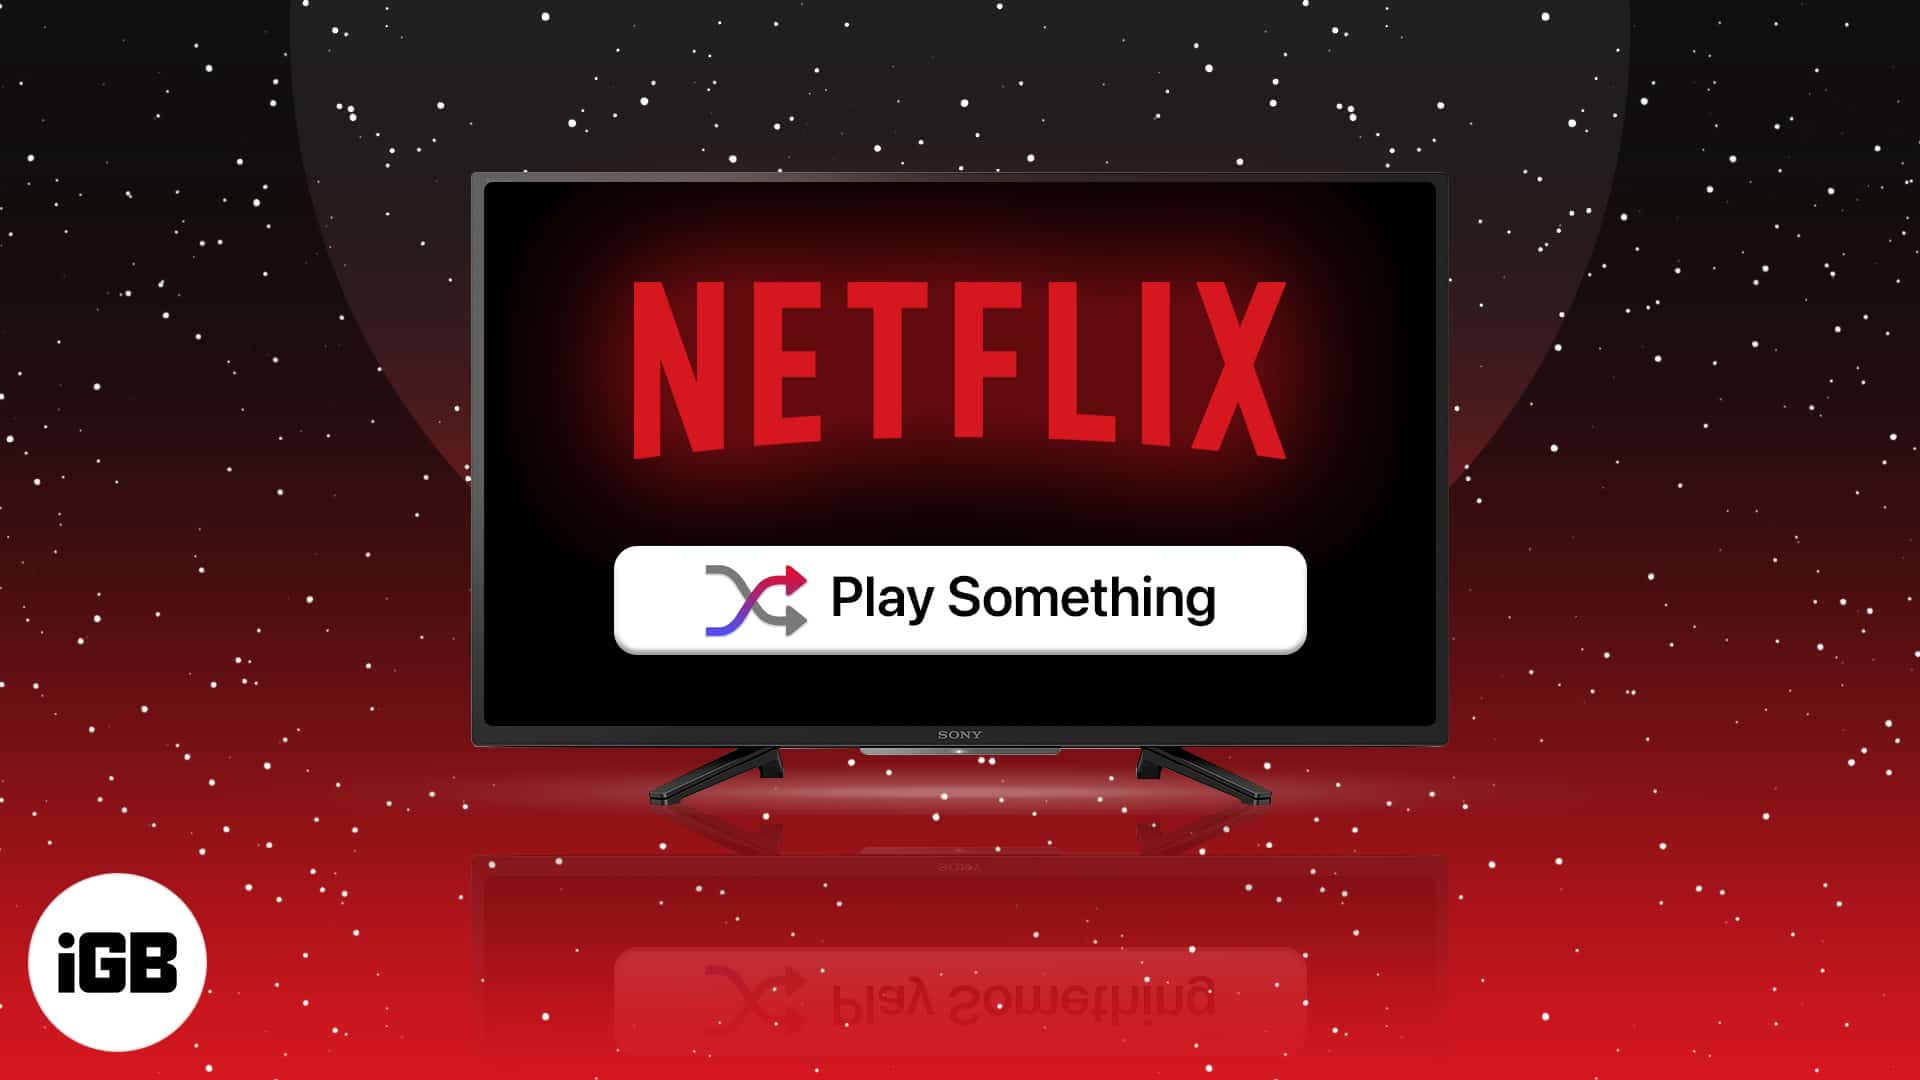 How to use Netflix Play Something